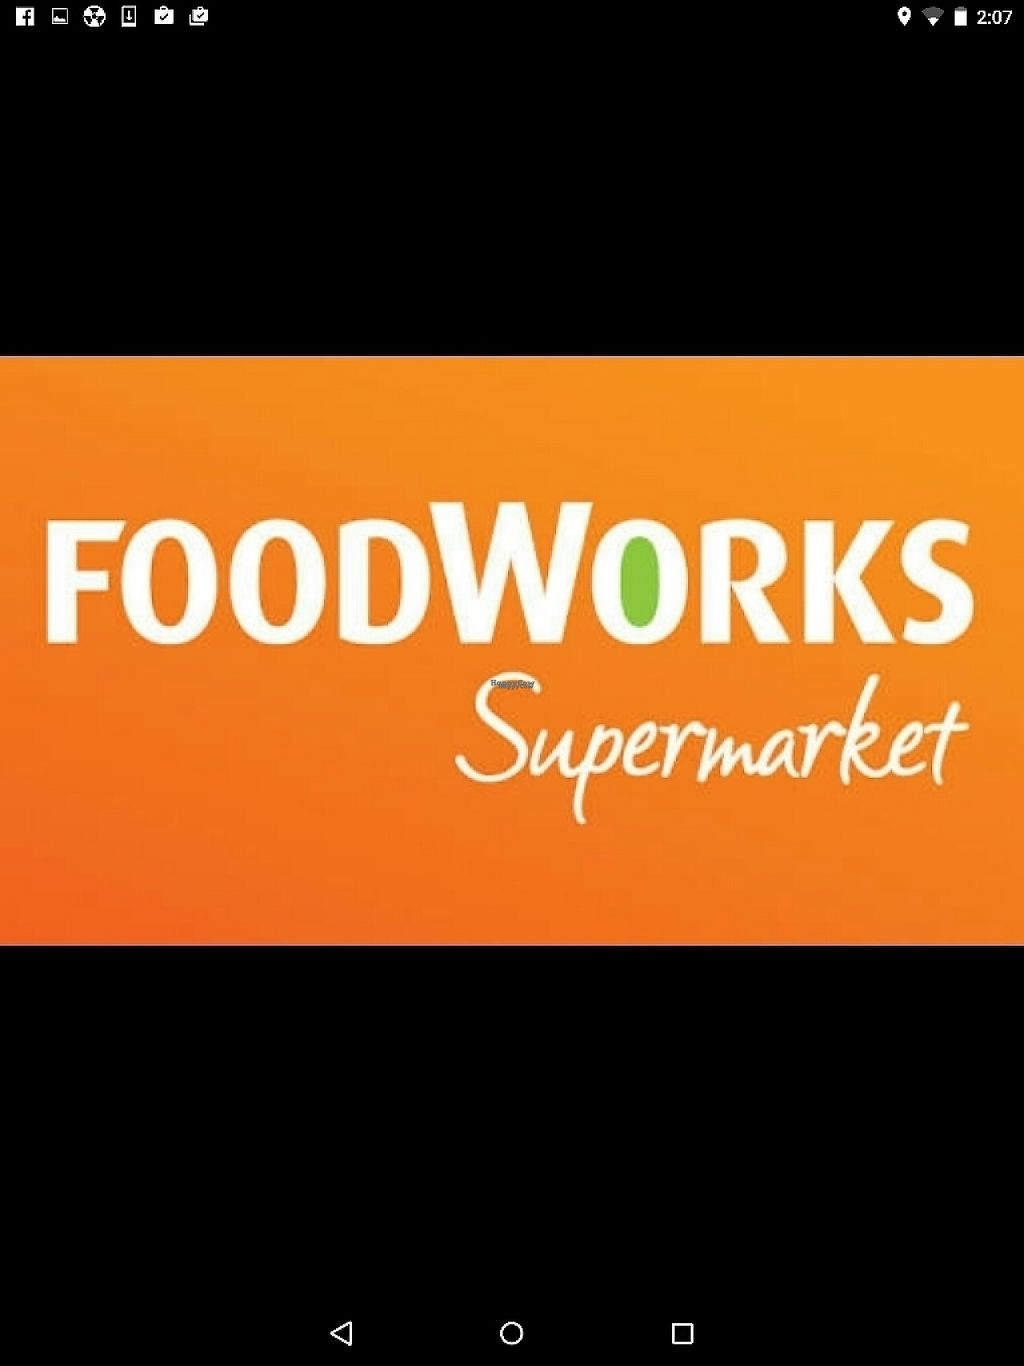 """Photo of FoodWorks  by <a href=""""/members/profile/VicvegFul"""">VicvegFul</a> <br/>FoodWorks <br/> February 17, 2017  - <a href='/contact/abuse/image/87277/227296'>Report</a>"""